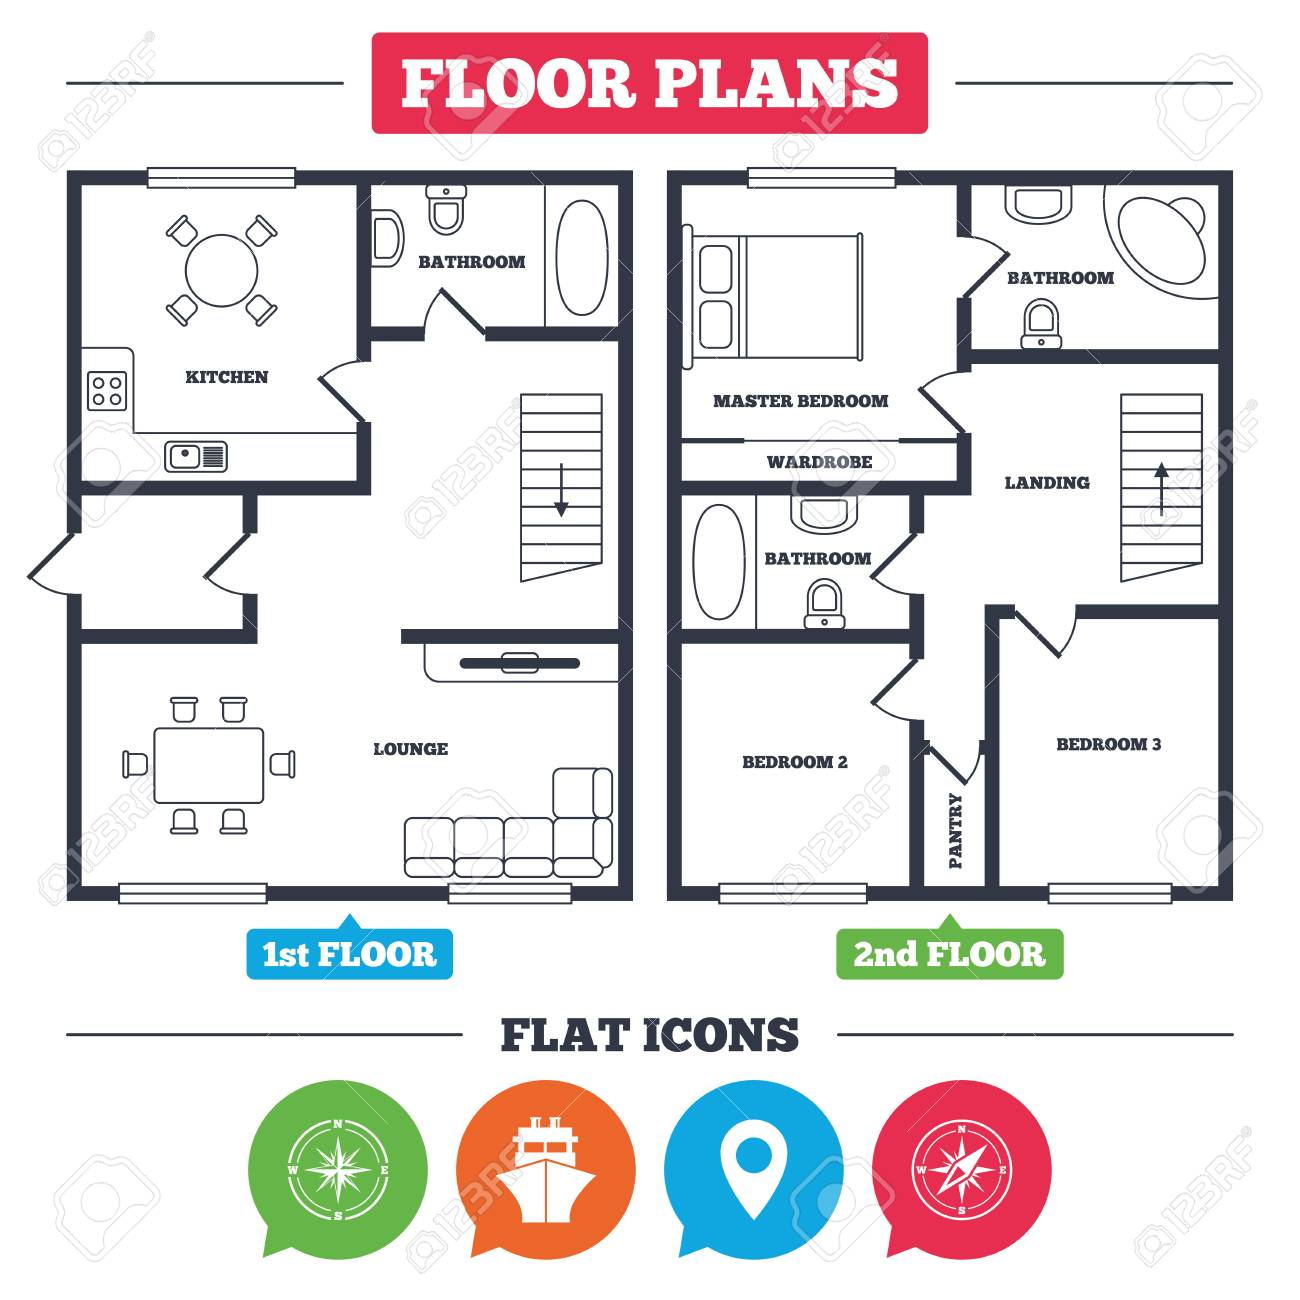 Architecture Plan With Furniture House Floor Plan Windrose Royalty Free Cliparts Vectors And Stock Illustration Image 77845806